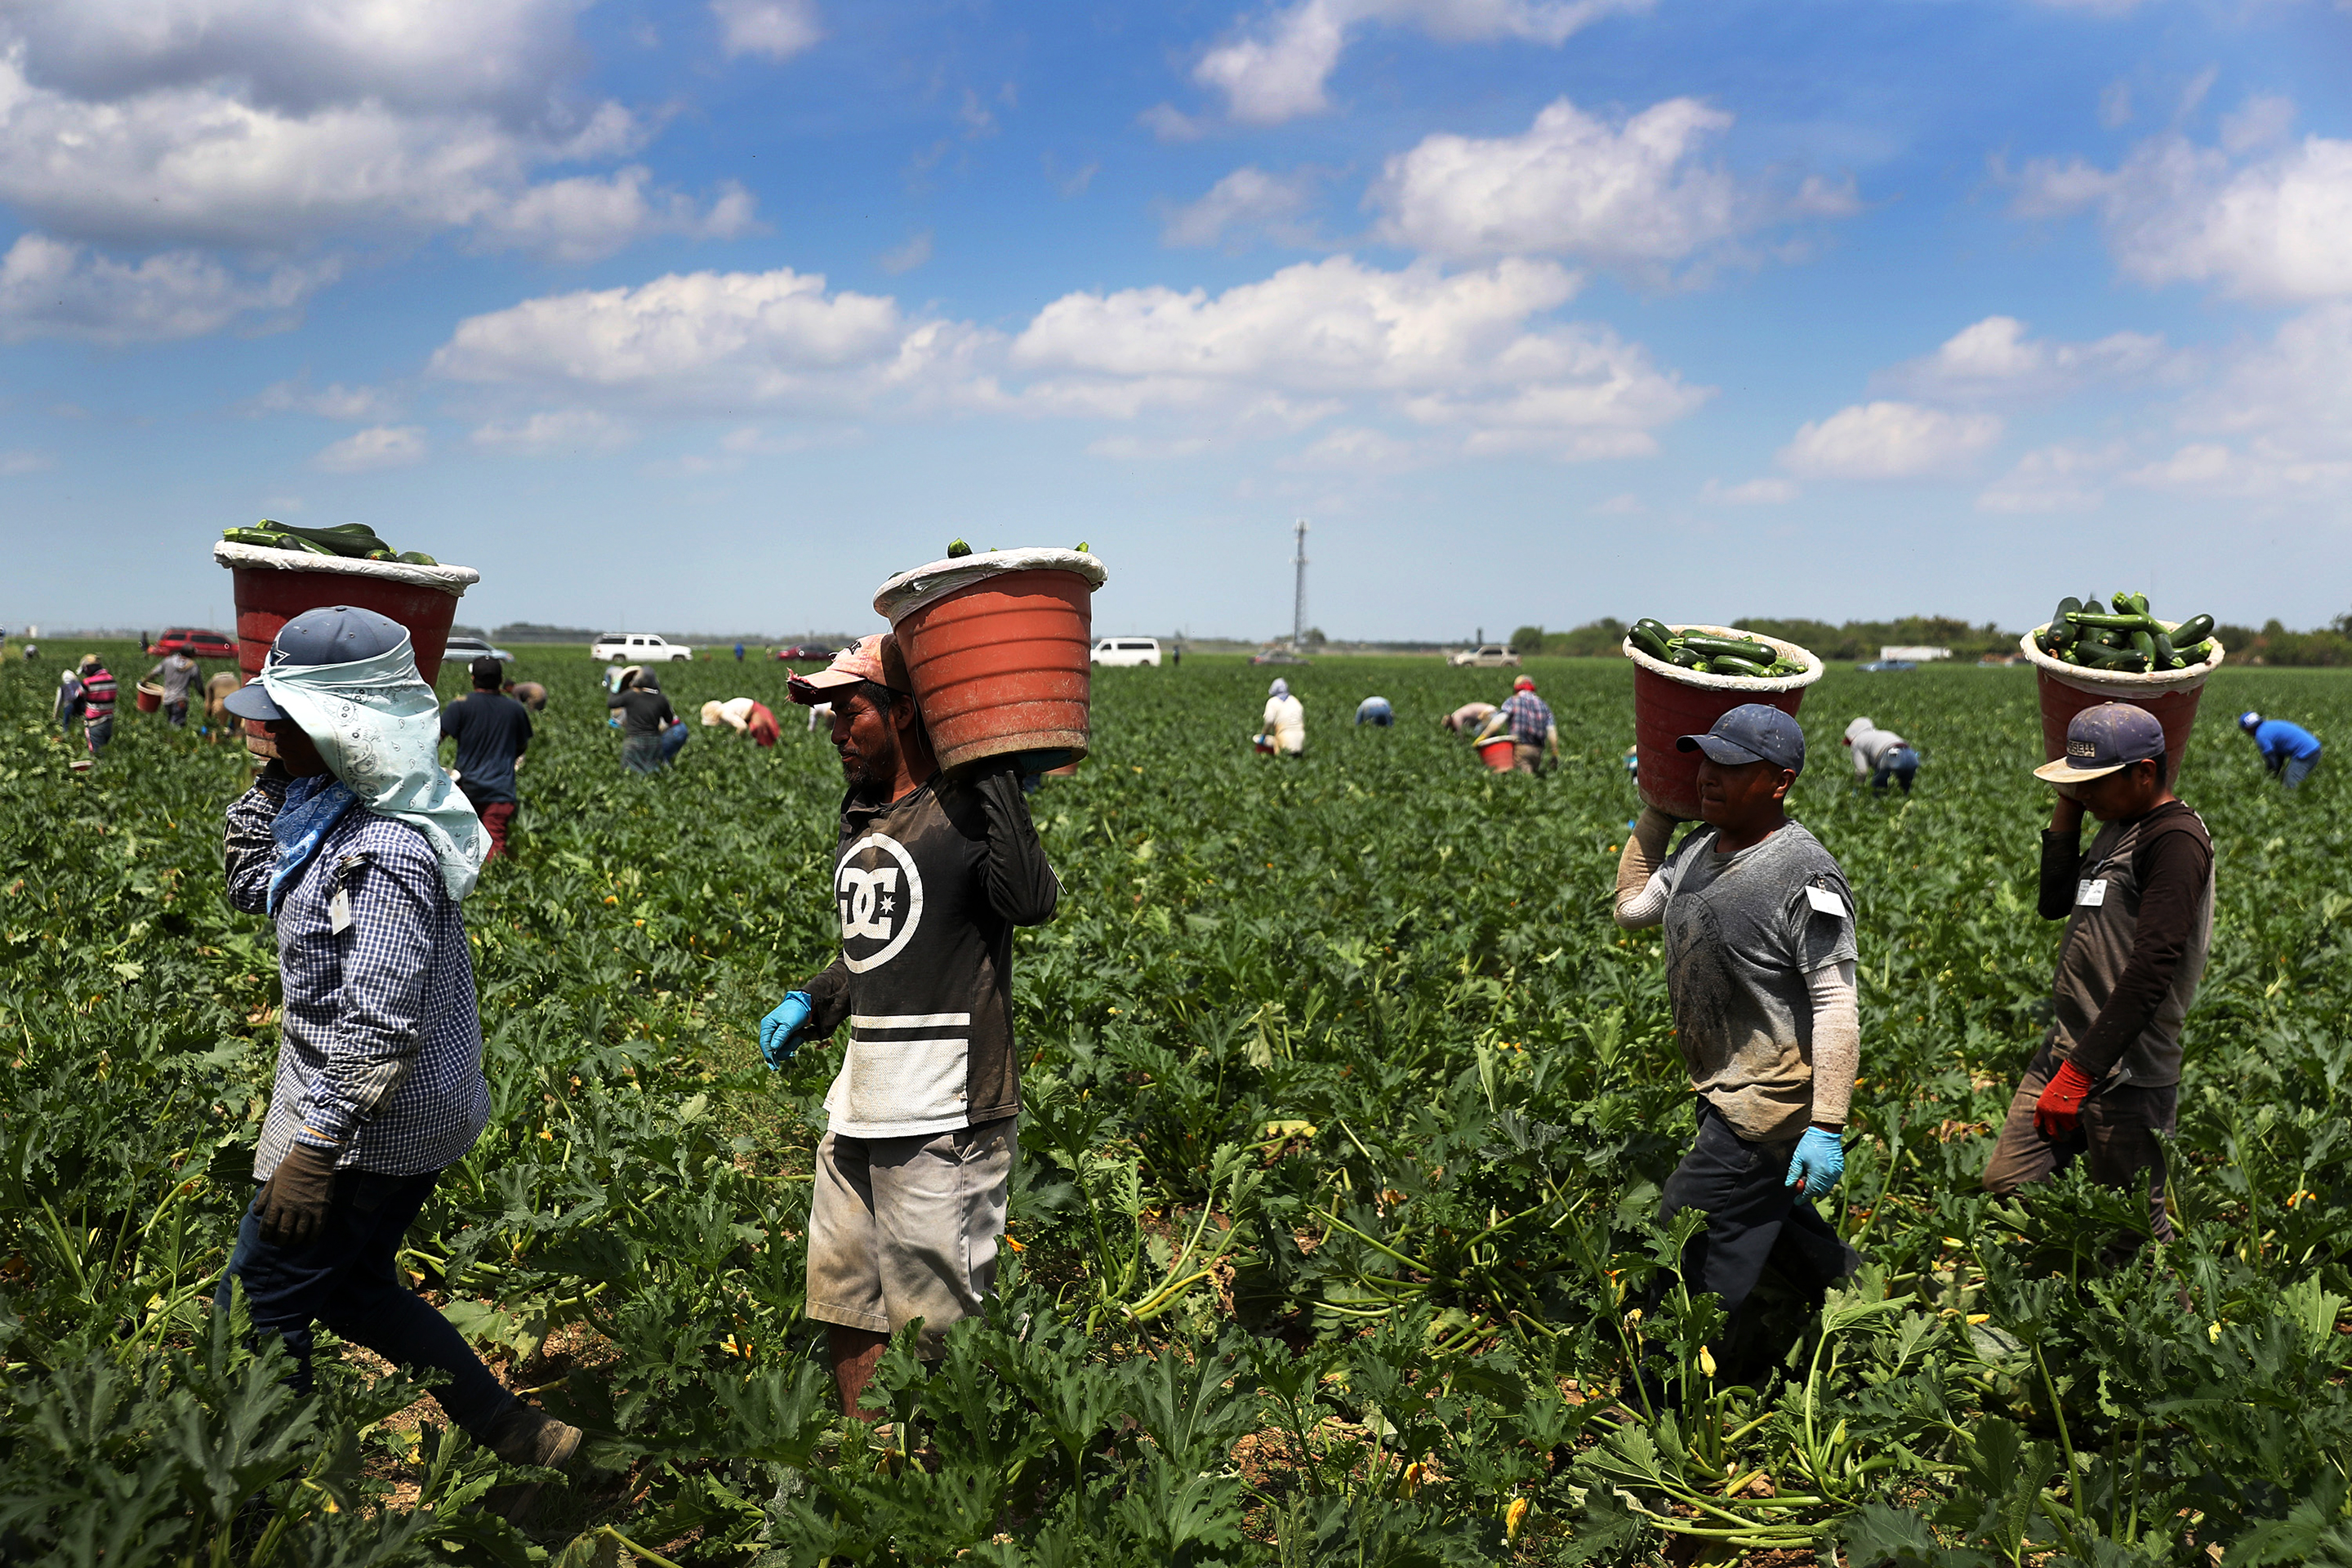 Coronavirus essential workers: Farmworkers are left unprotected during  pandemic | Fortune